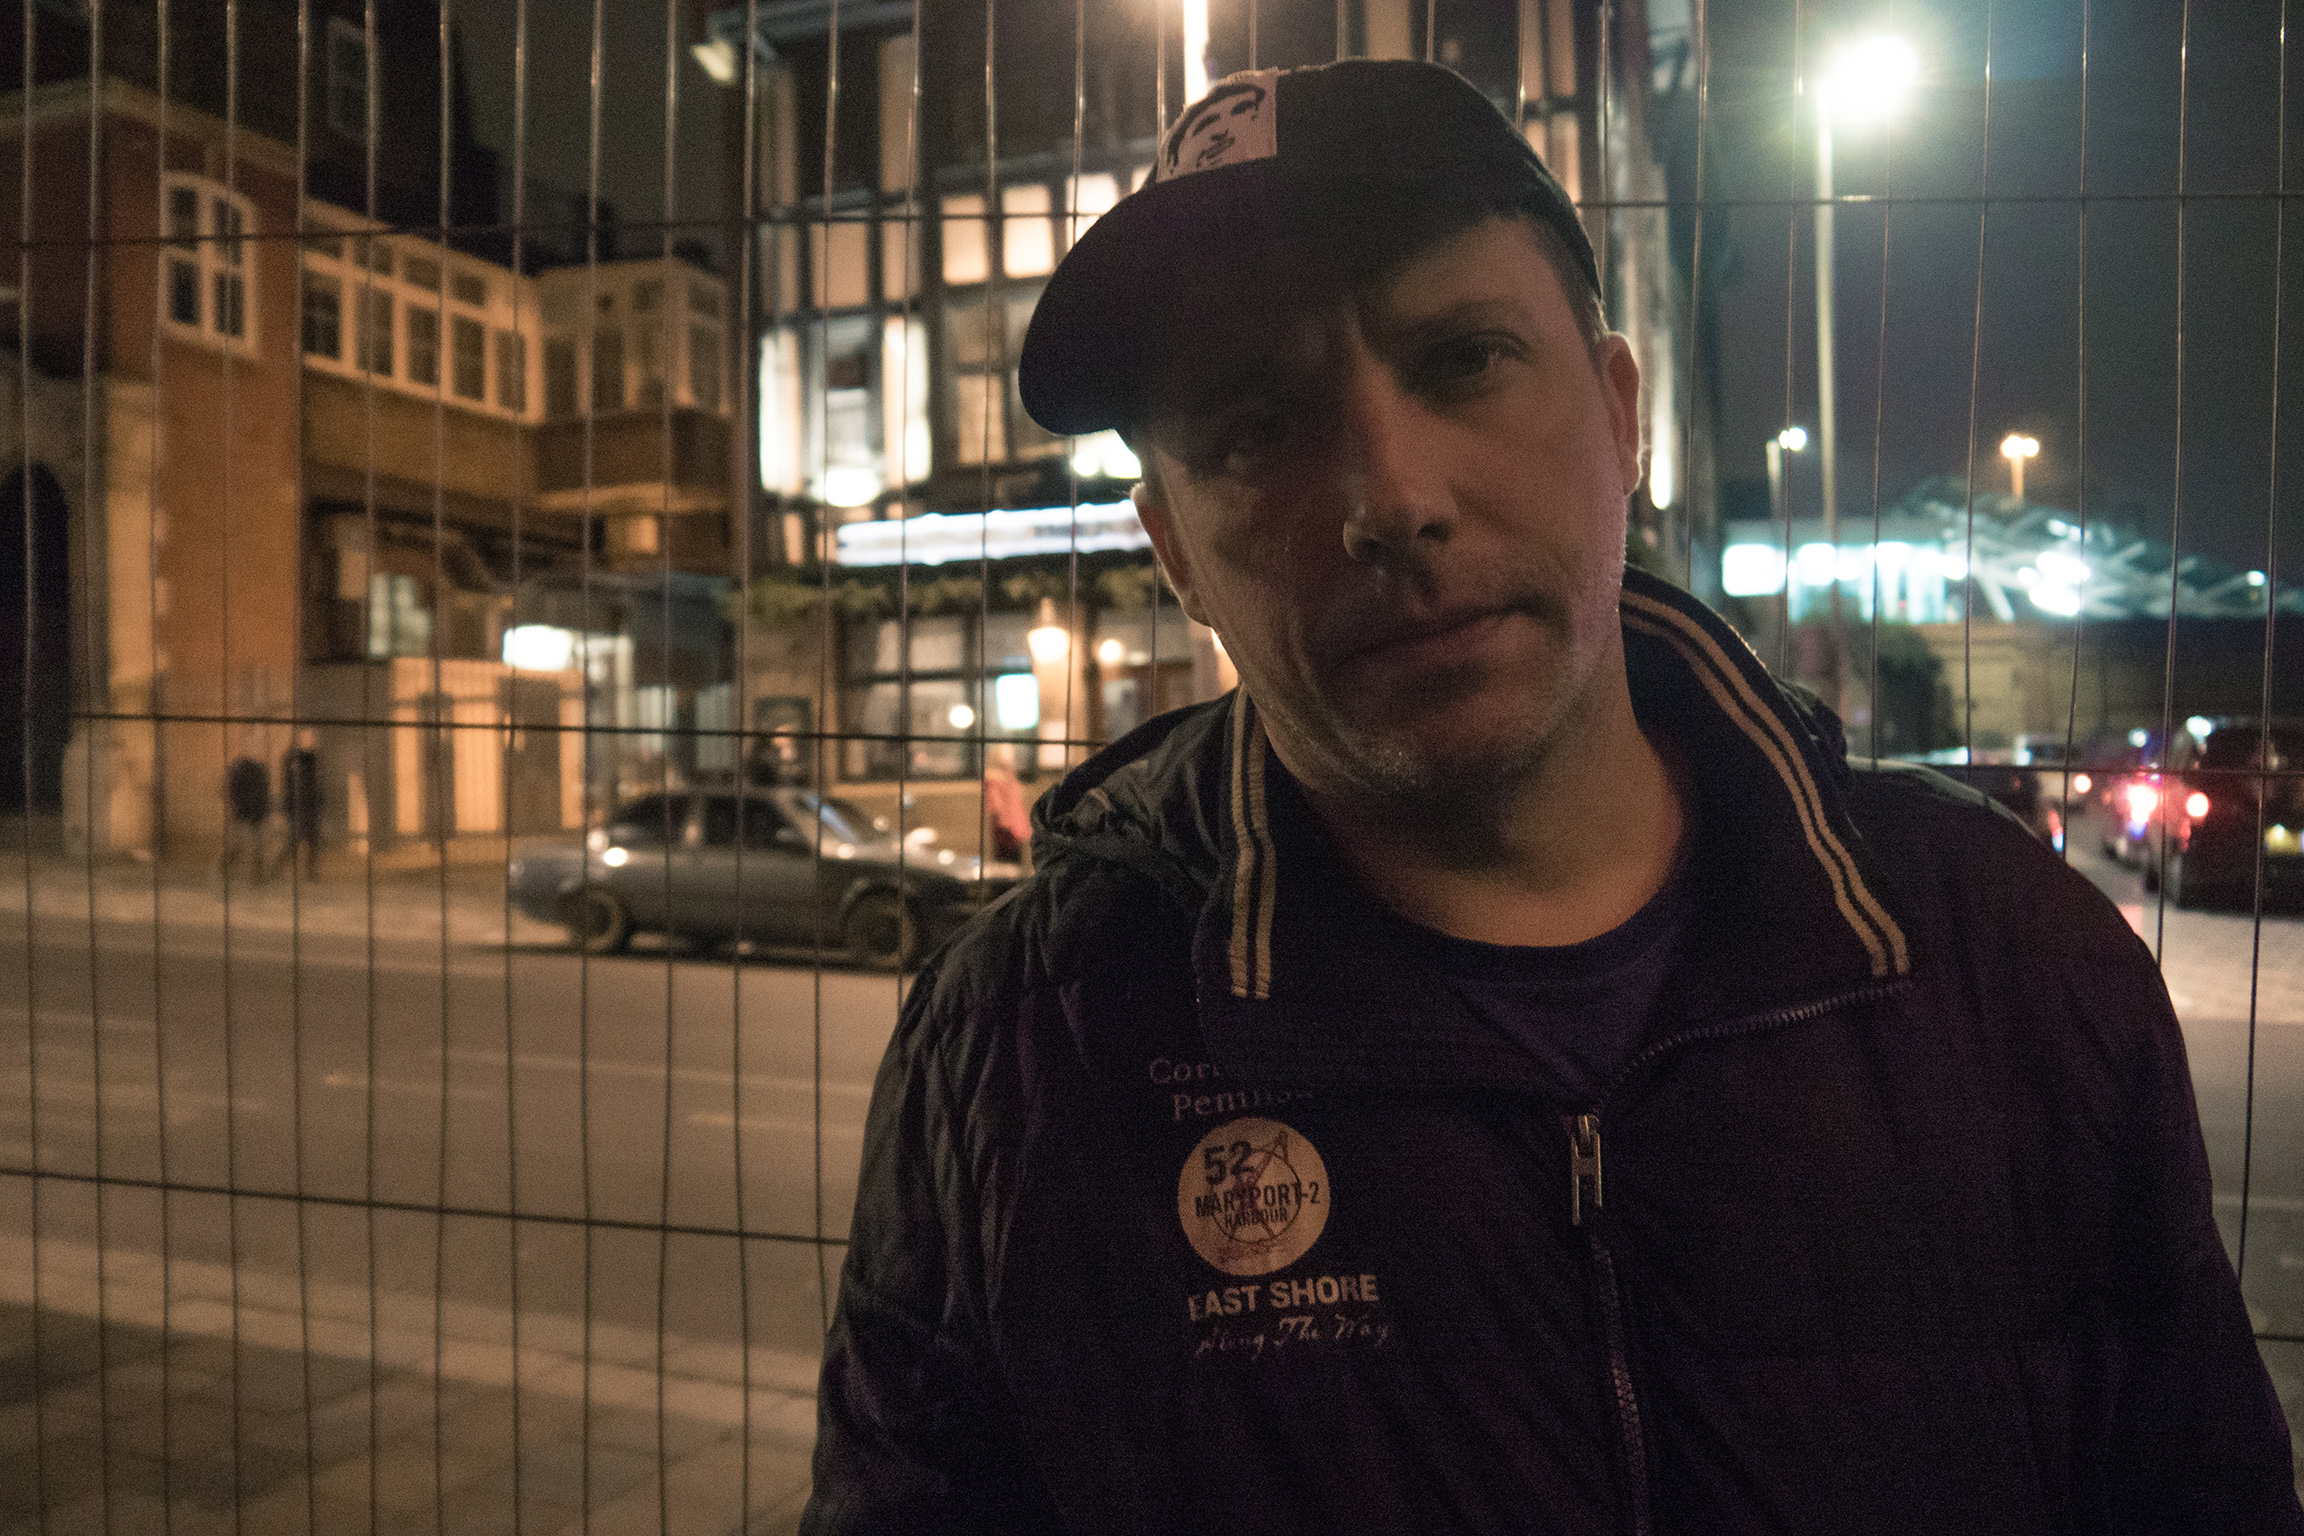 Pablopavo, Polish musician, outside the GOCC (WOŚP) final in London, 2018 Fot. Bartosz Kielak